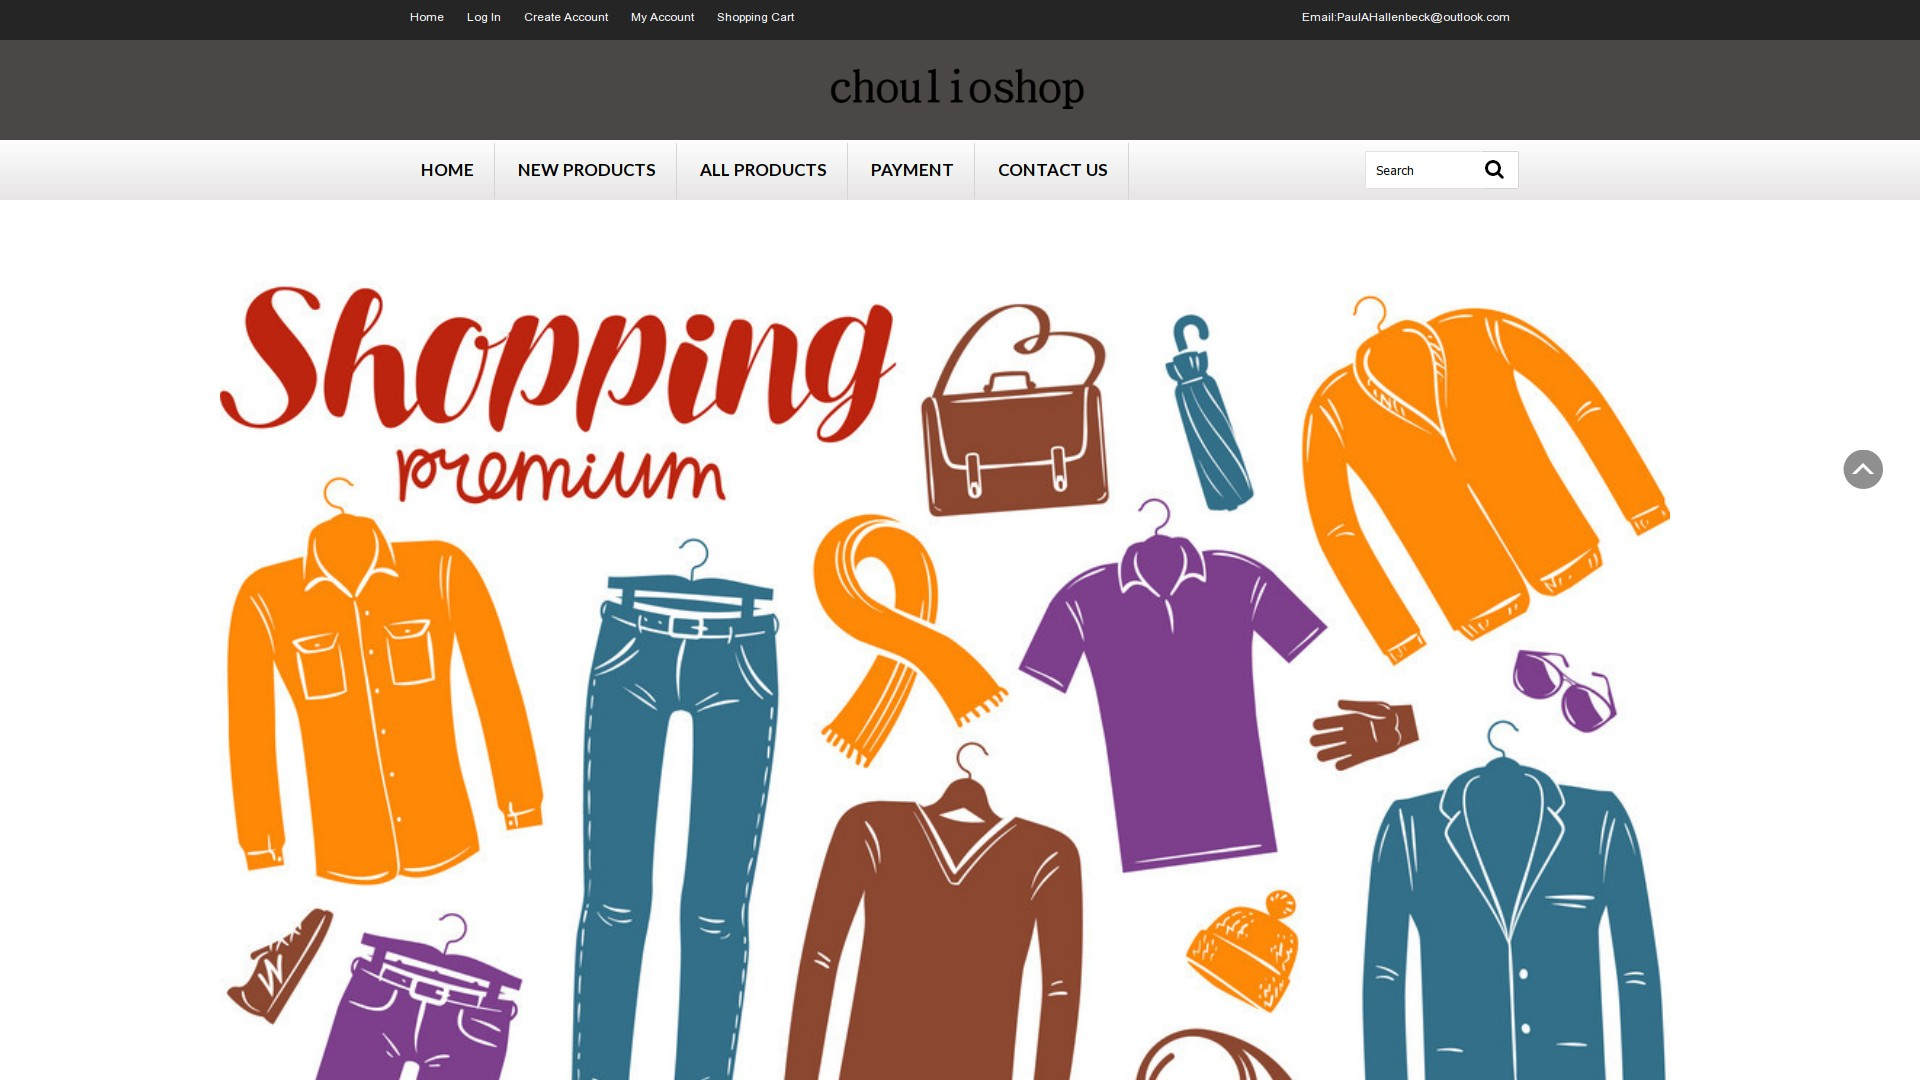 Is Choulioshop a Scam? See the Review of the Online Store